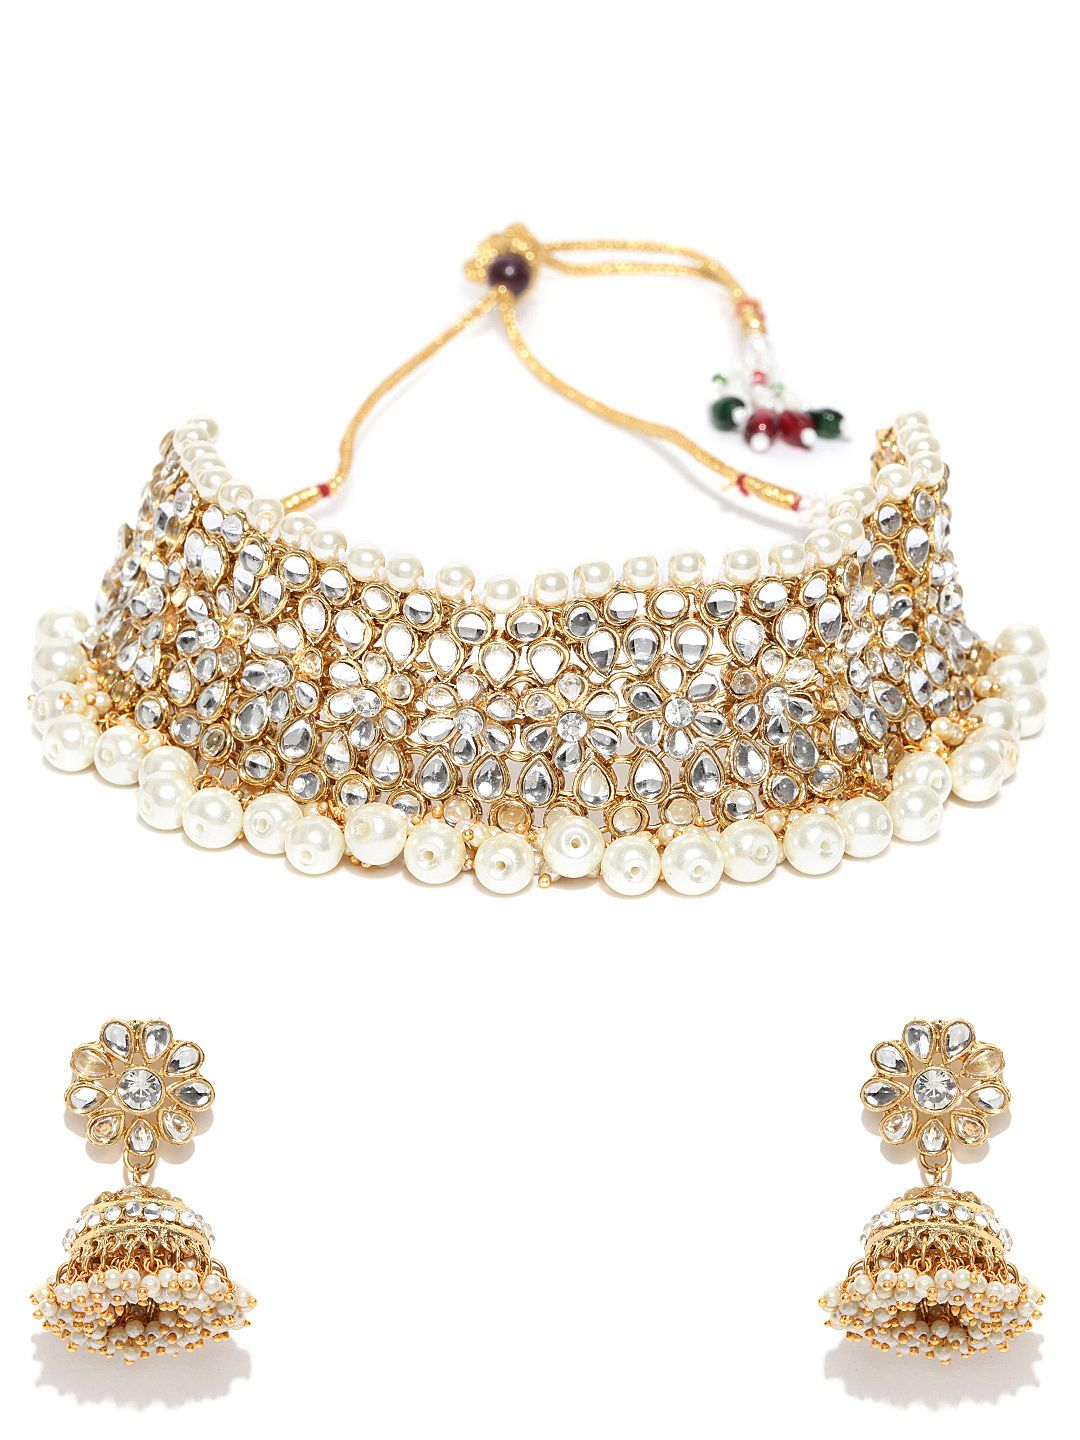 50e59f2d2 Ankur traditional gold plated kundan and pearl choker necklace set for women